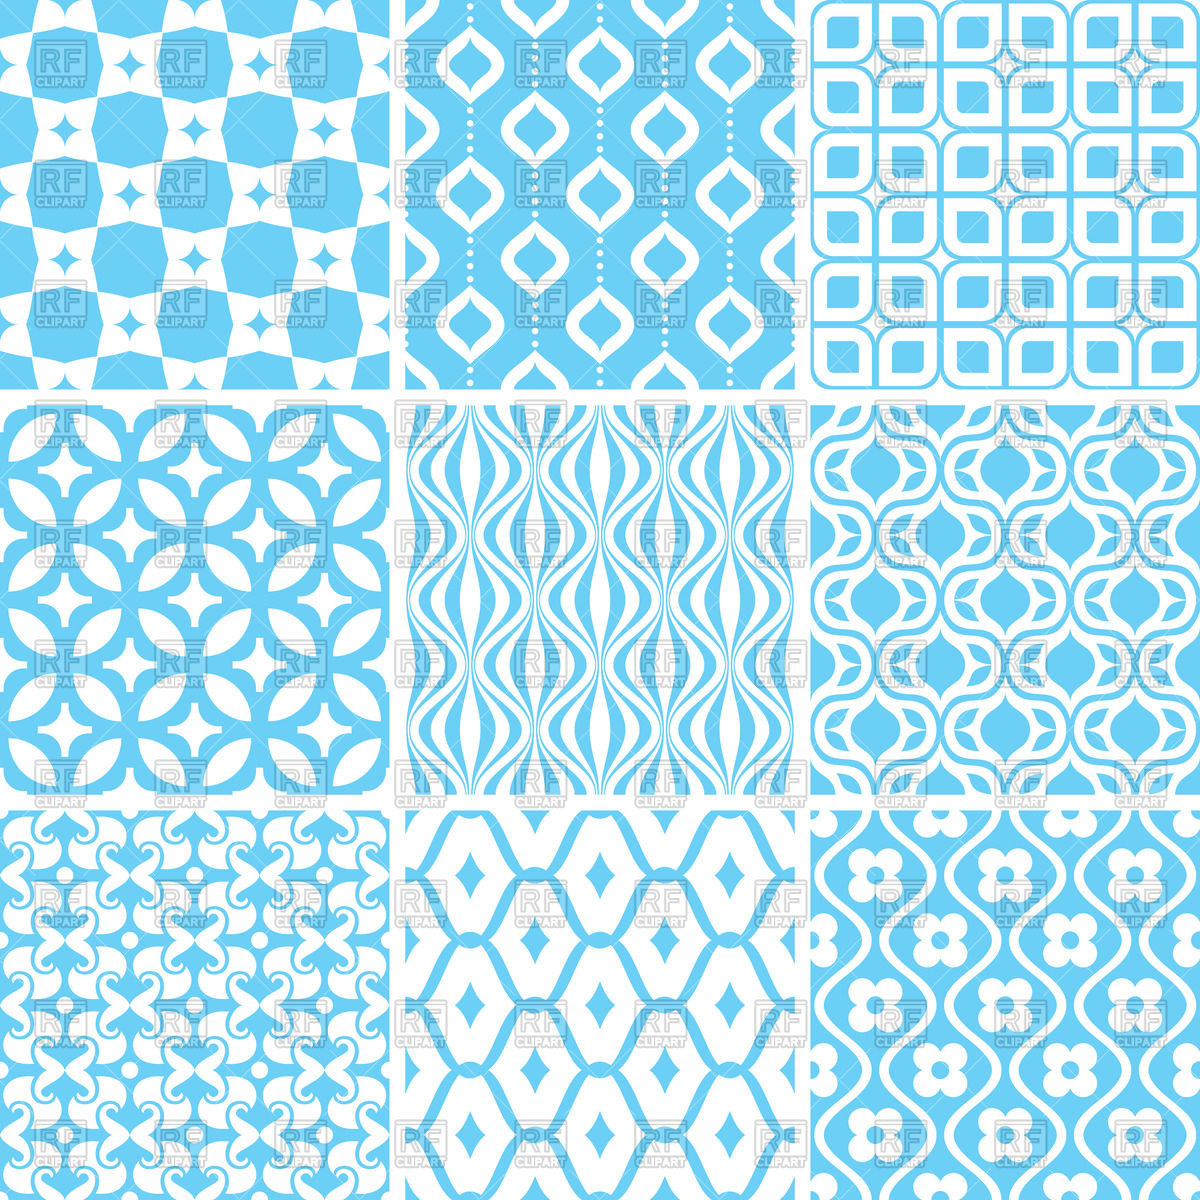 Seamless blue wallpaper with geometric patterns 47236 download 1200x1200